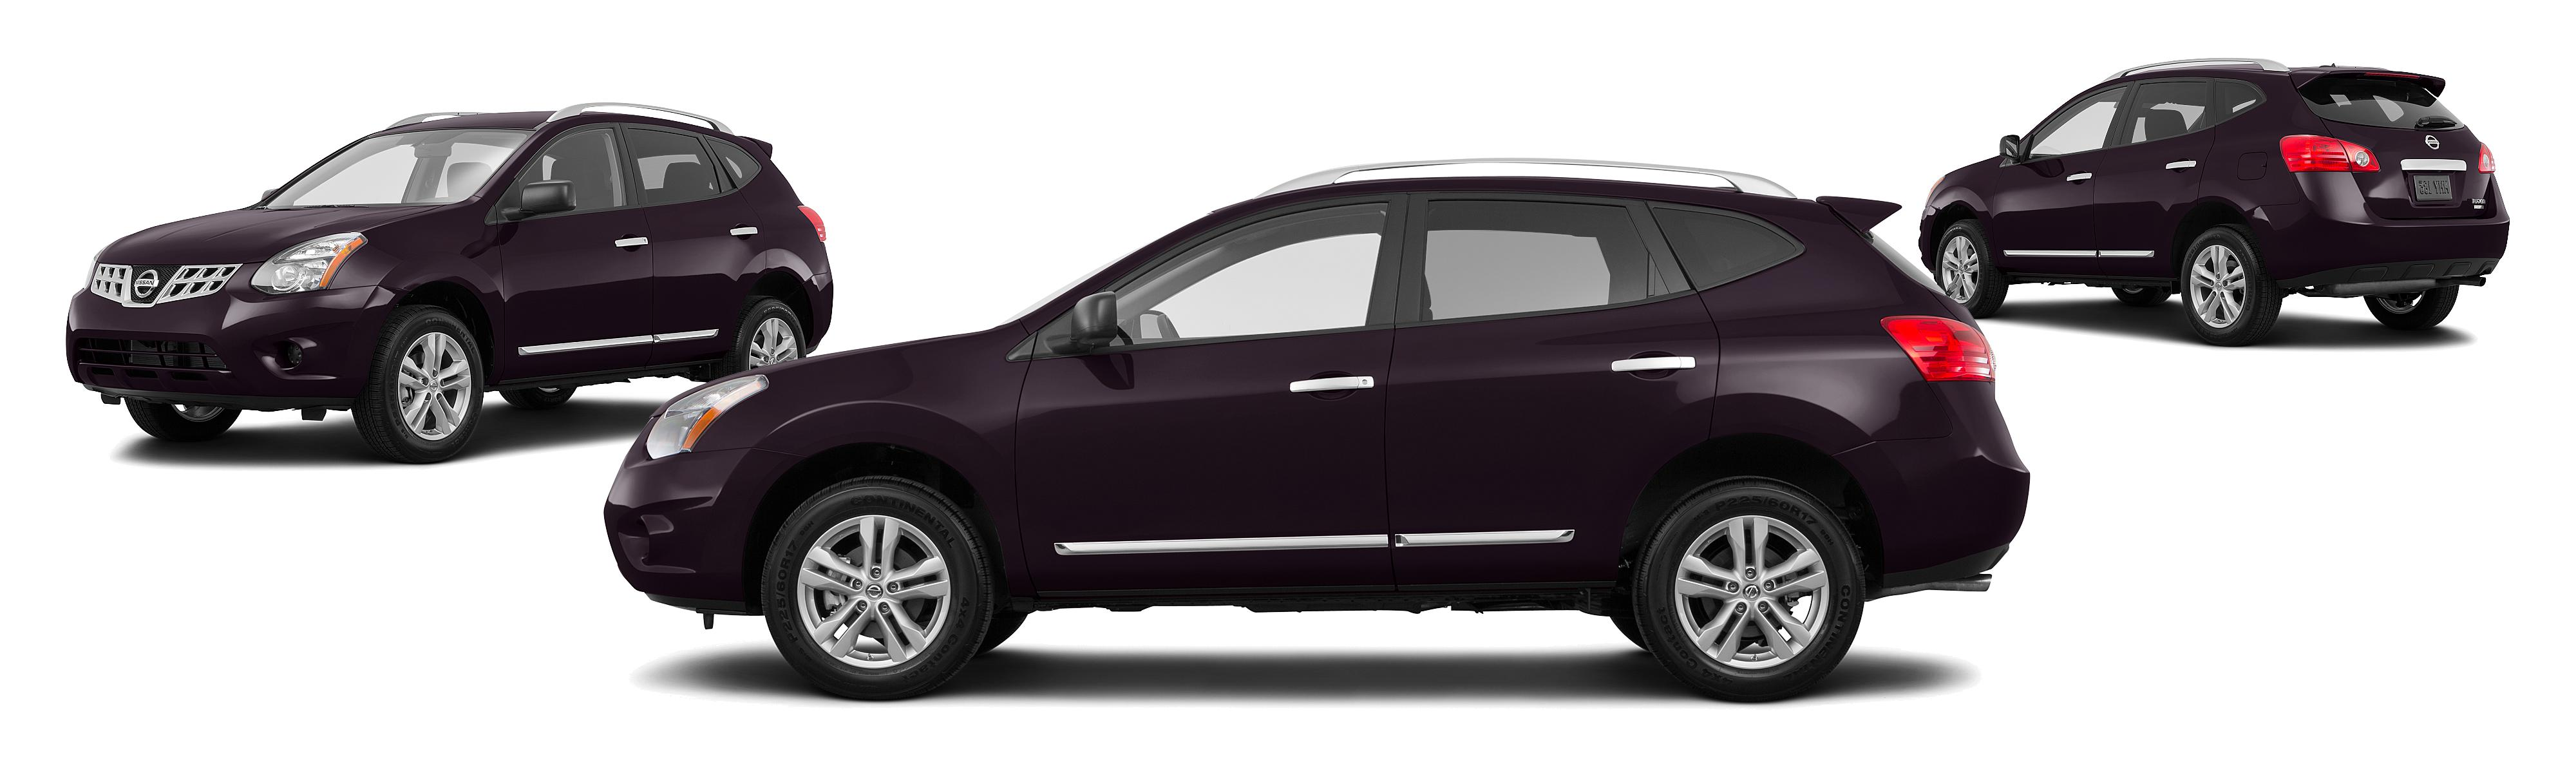 that engine select generation as review cylinder one makes with liter feet horsepower rogue of four nissan offers generous the a and pound previous only